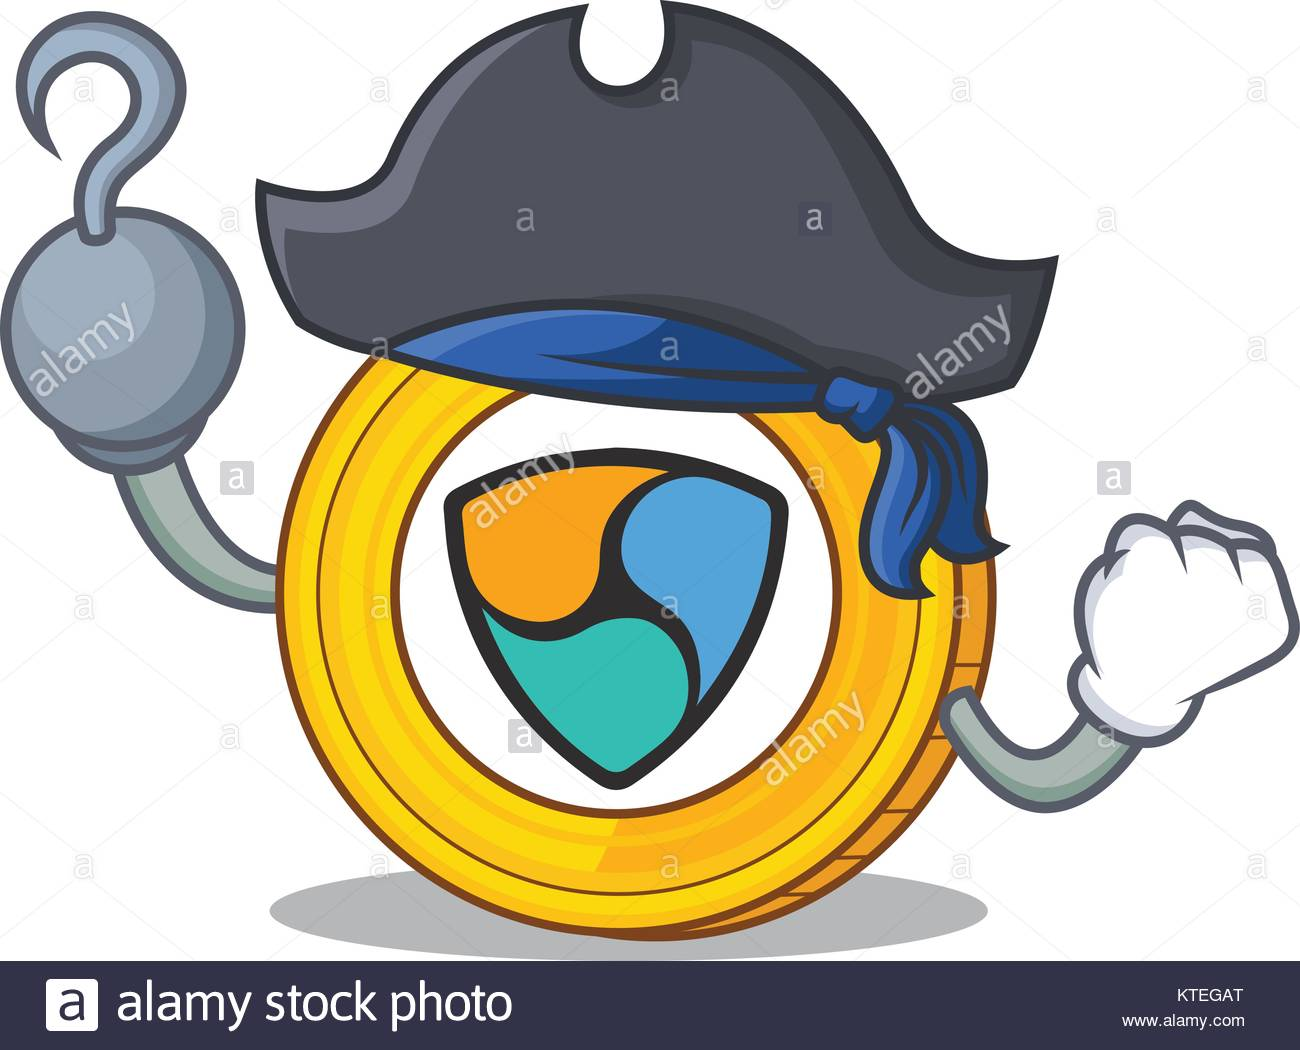 Pirate NEM coin character cartoon - Stock Image